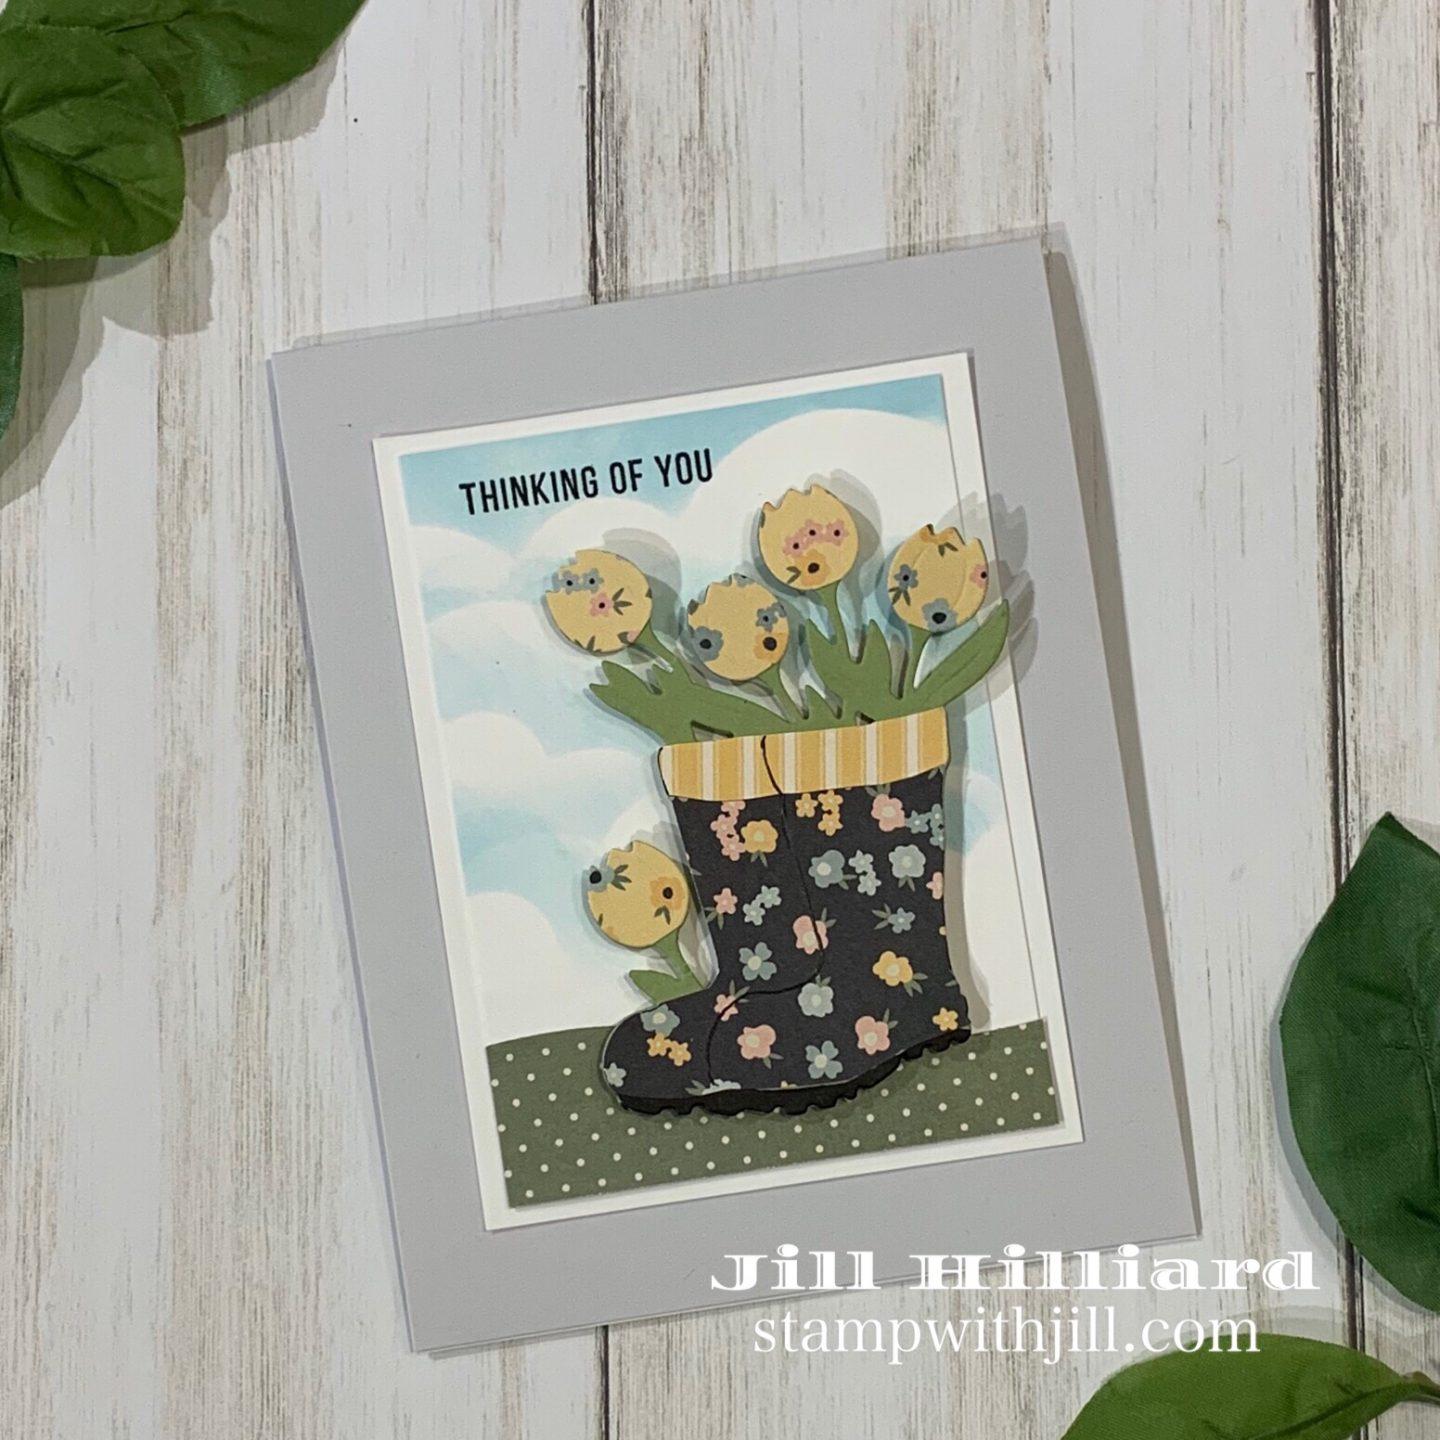 Stamp with Jill, Hello Darling, Simon Says Stamp April card kit